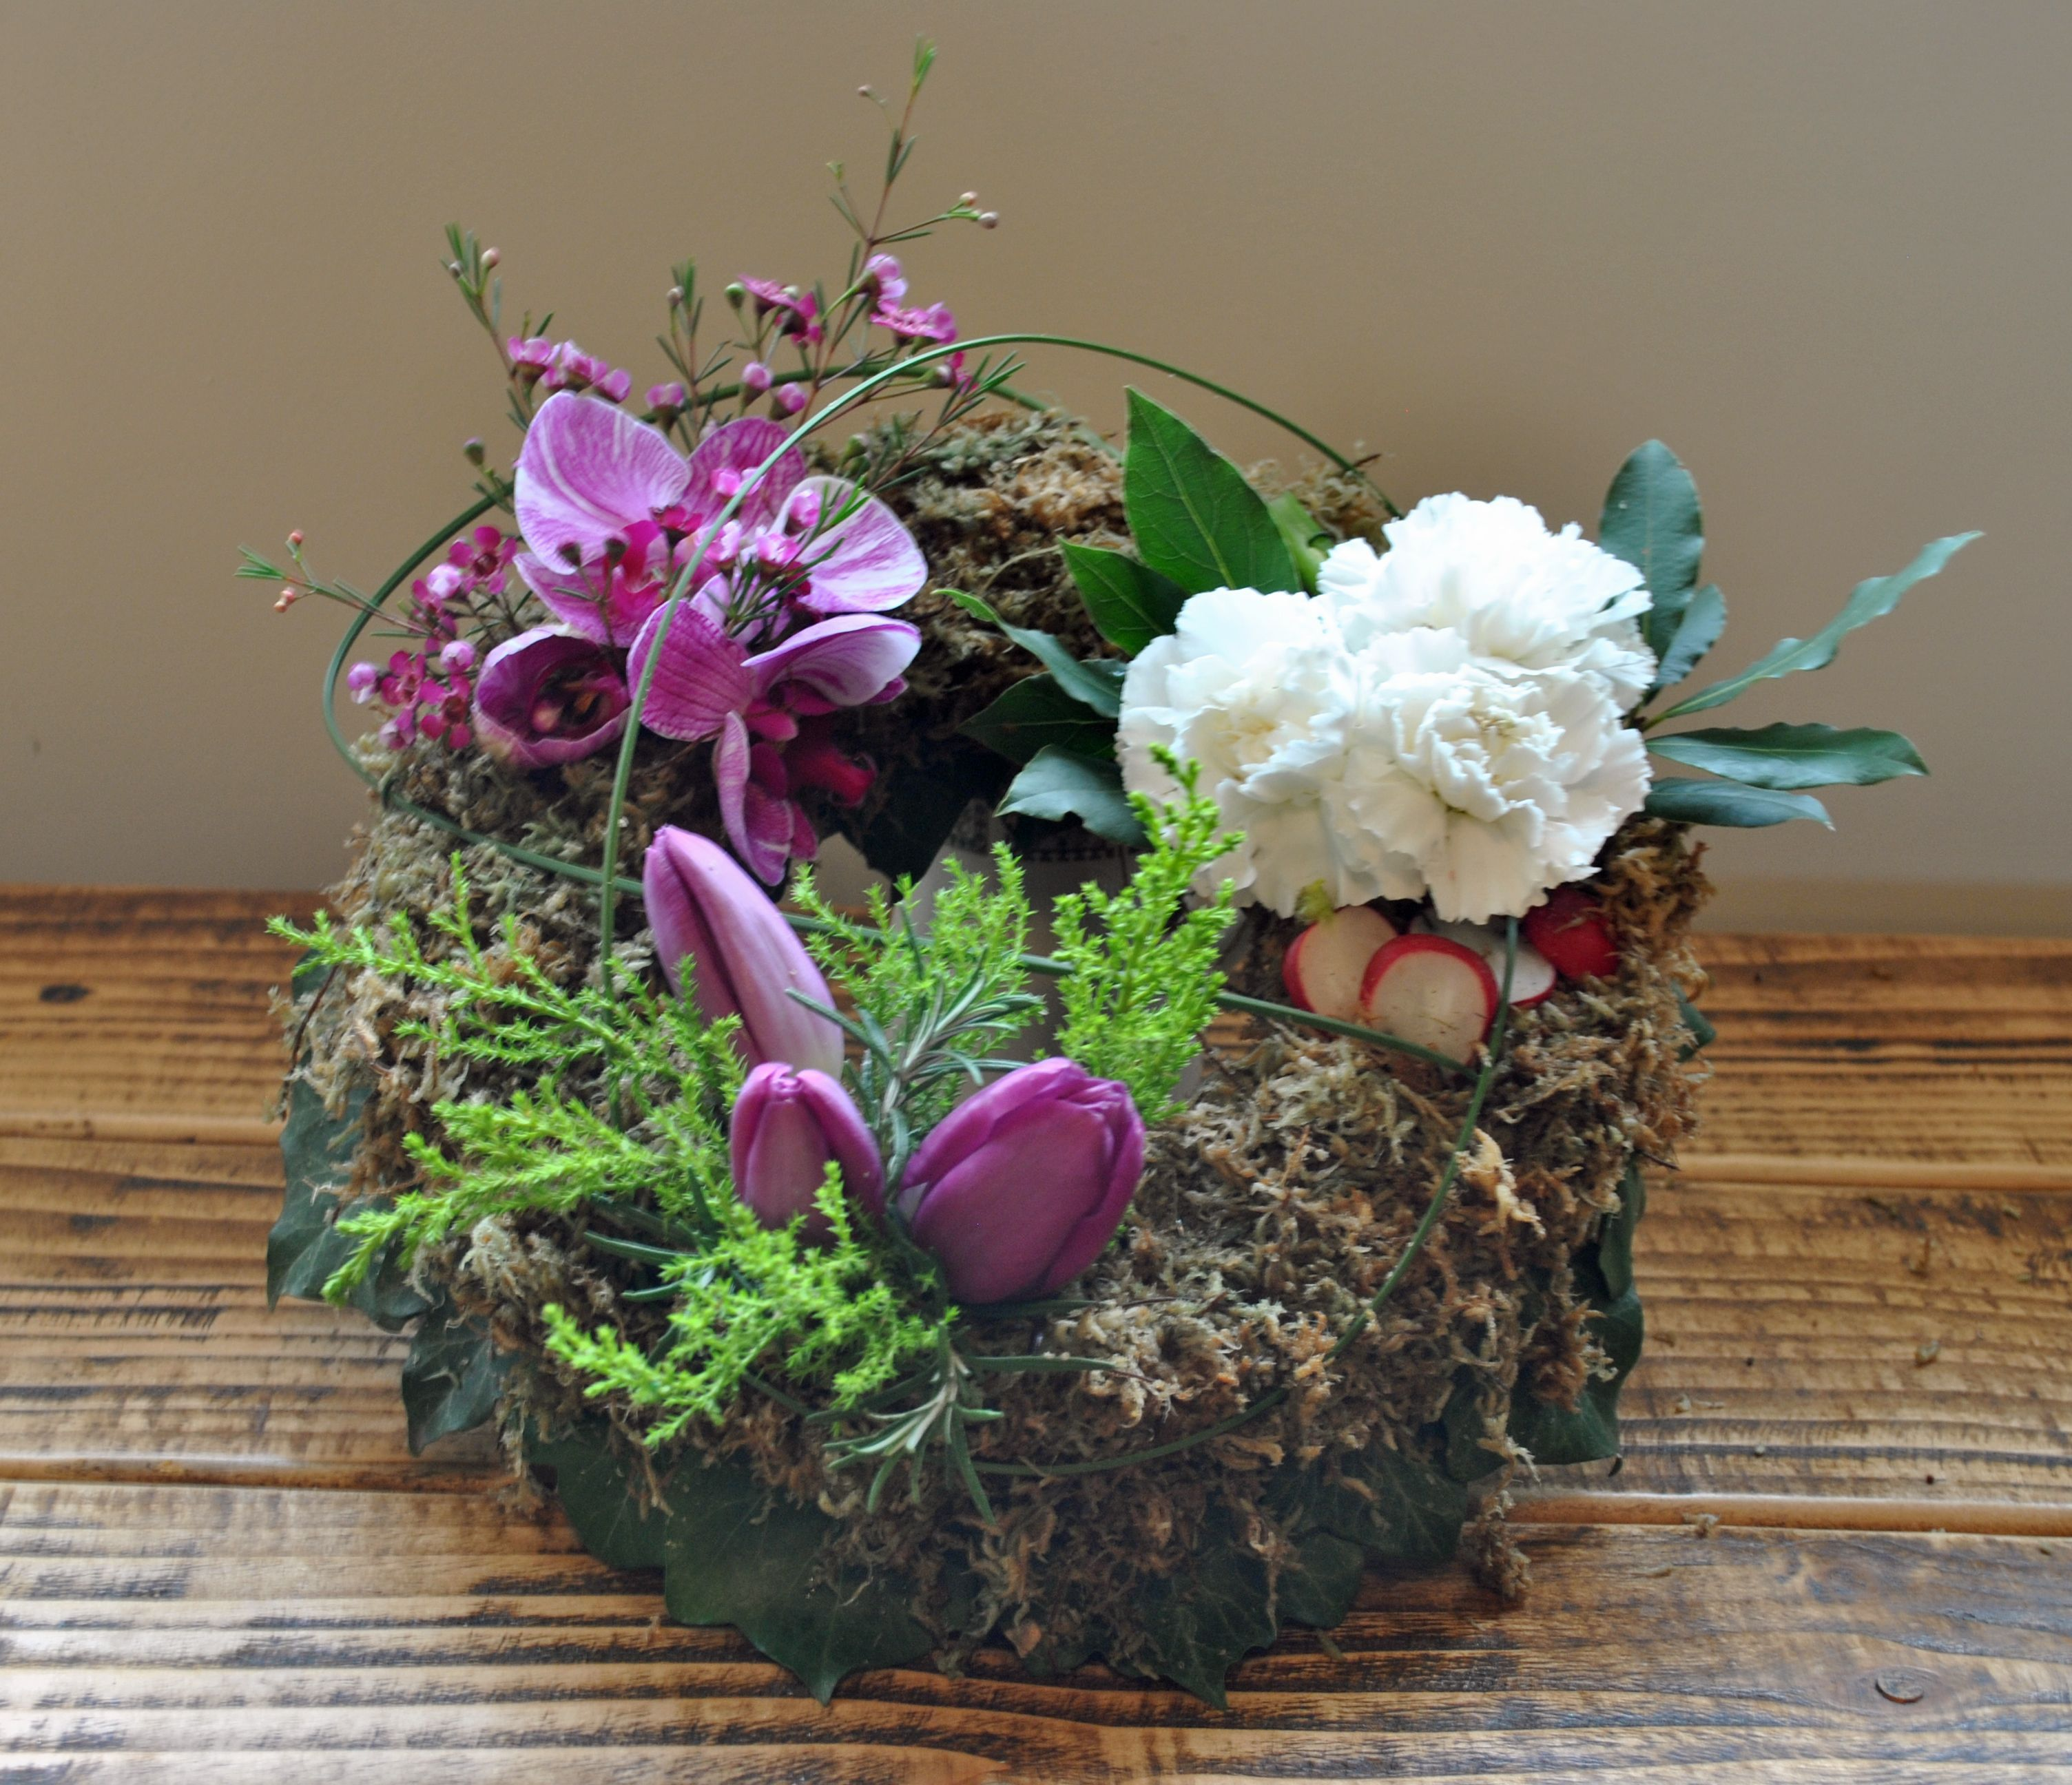 Bespoke funeral wreath gardening inspired with orchids tulips bespoke funeral wreath gardening inspired with orchids tulips carnations and vegetables base izmirmasajfo Image collections